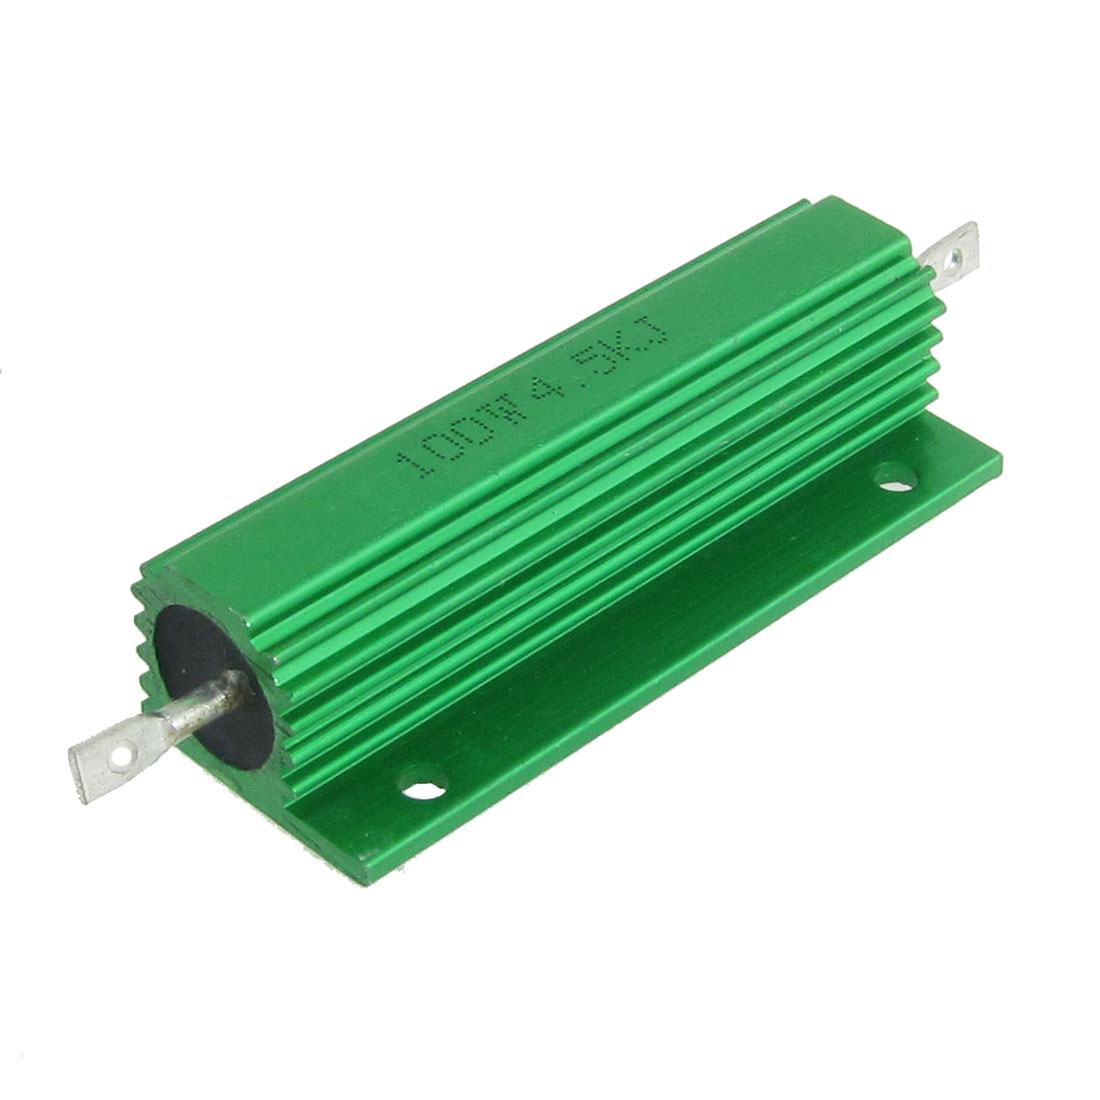 2 Pcs Chasis Mounted Green Aluminum Clad Wirewound Resistors 100W 4.5K Ohm 5%